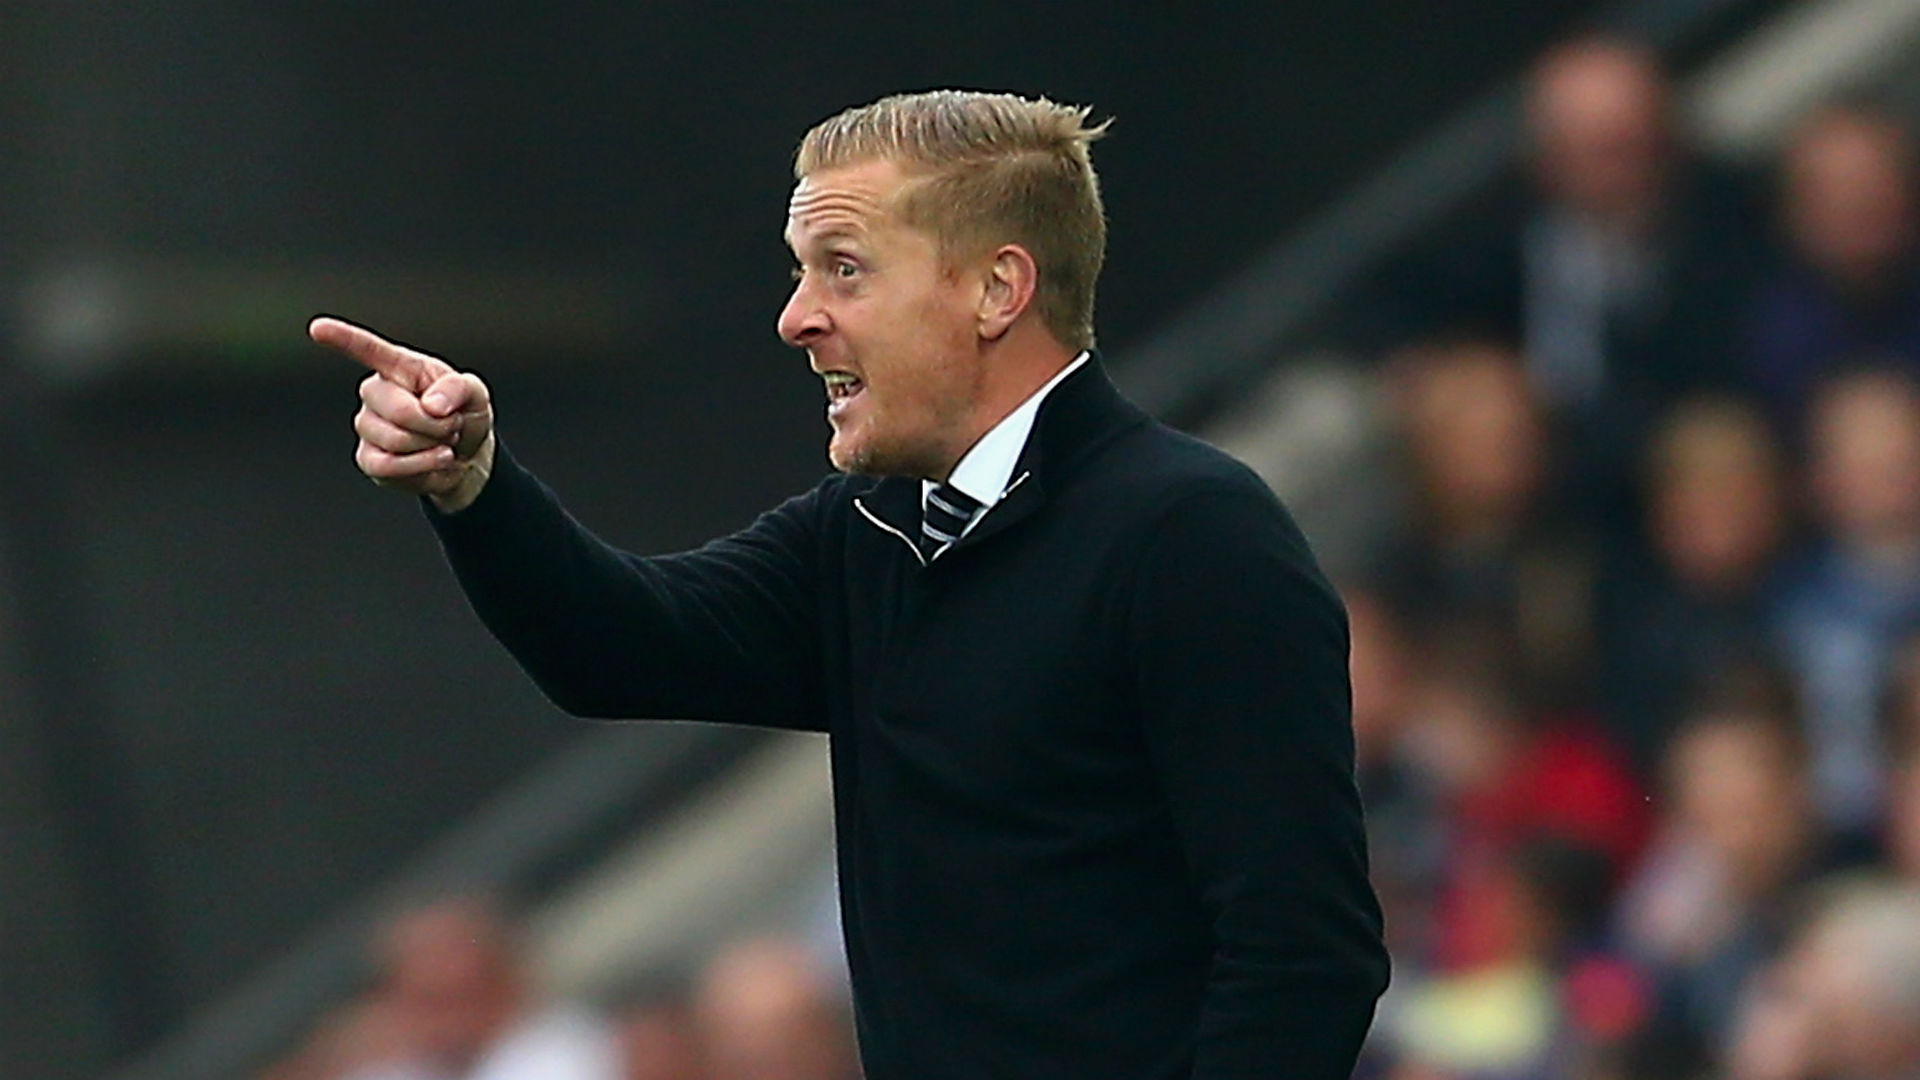 Garry Monk: